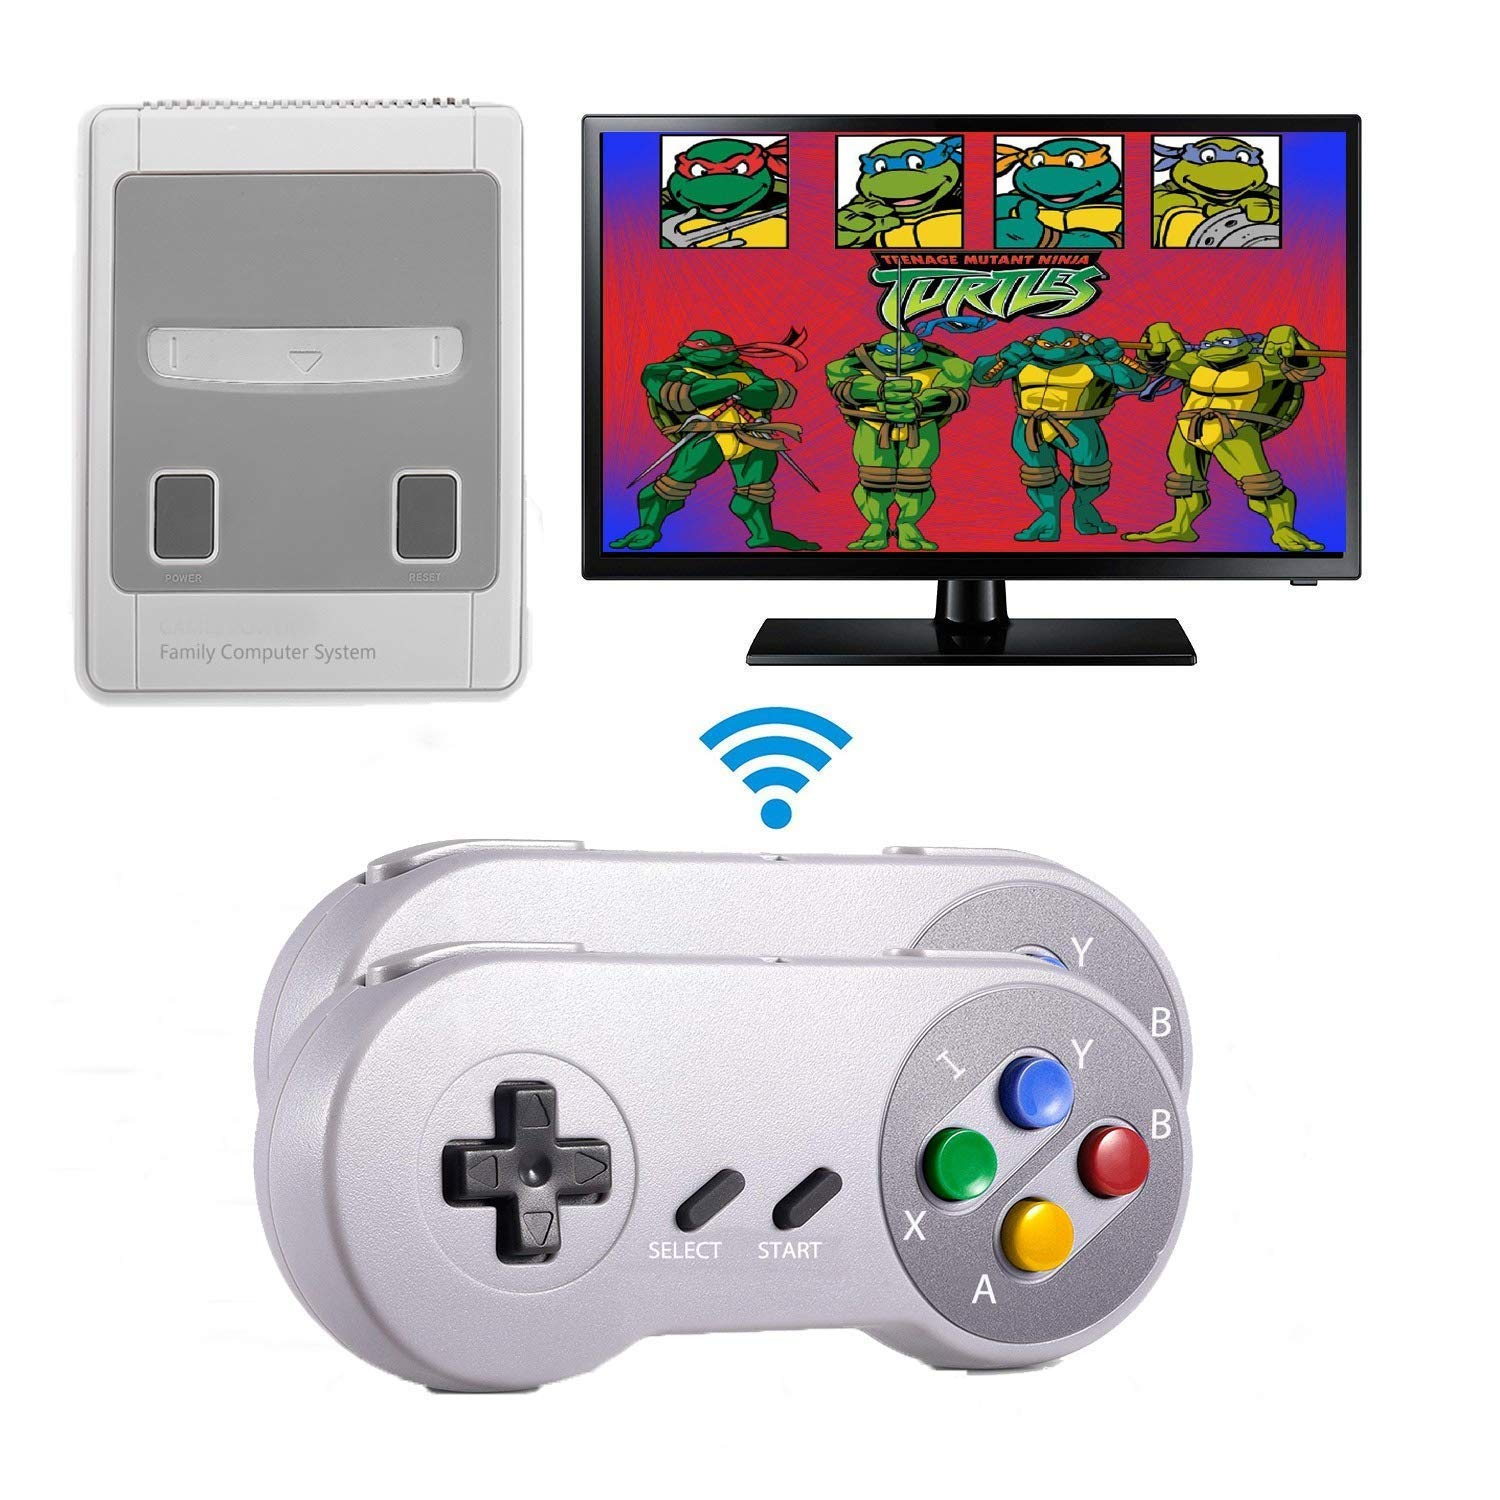 Old Arcade Classic Mini Game Consoles Classic Game Consoles Built-in 557 Games Video Games Handheld Game Player,AV Output,8-Bit , with 2.4 GHZ Wireless Controllers by Happy Zane (Image #6)